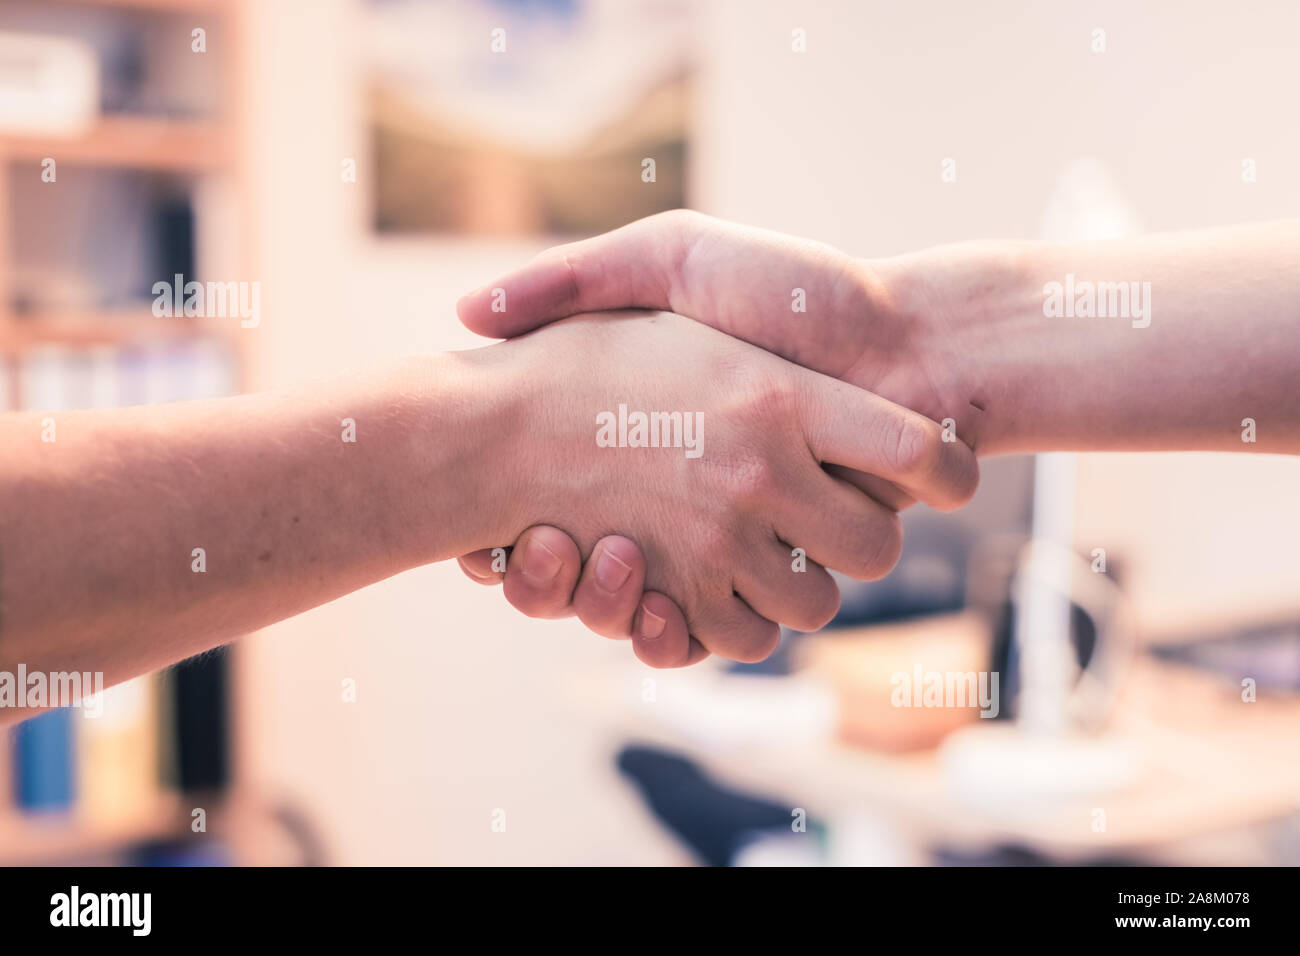 Man and woman are shaking hands, close up image, concept for human relationships Stock Photo